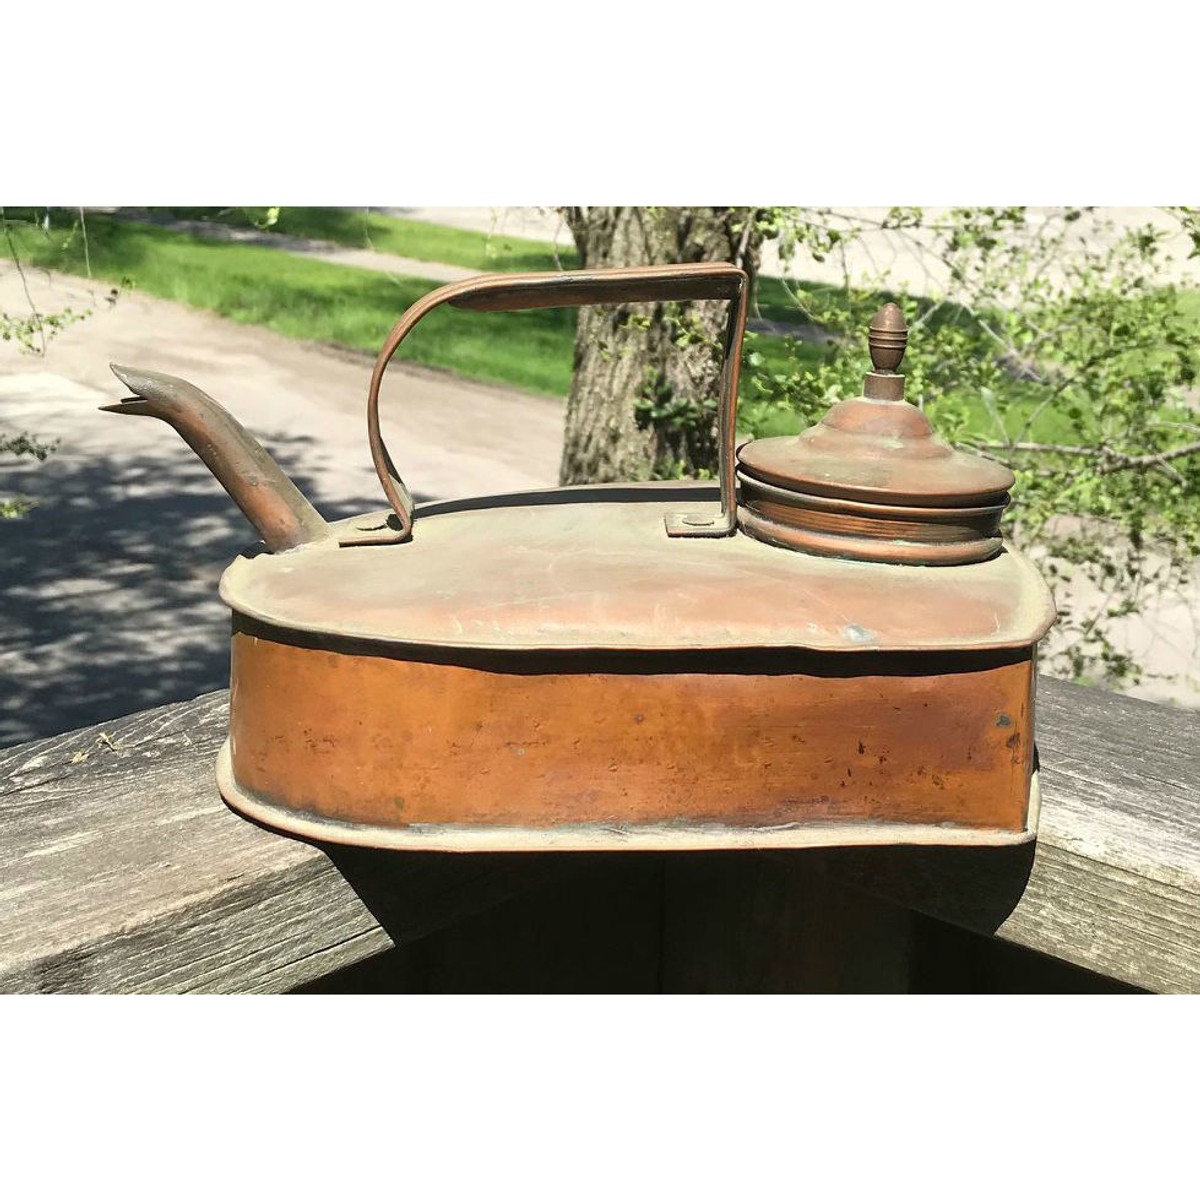 A18058 - Antique 19th Century Copper Teapot